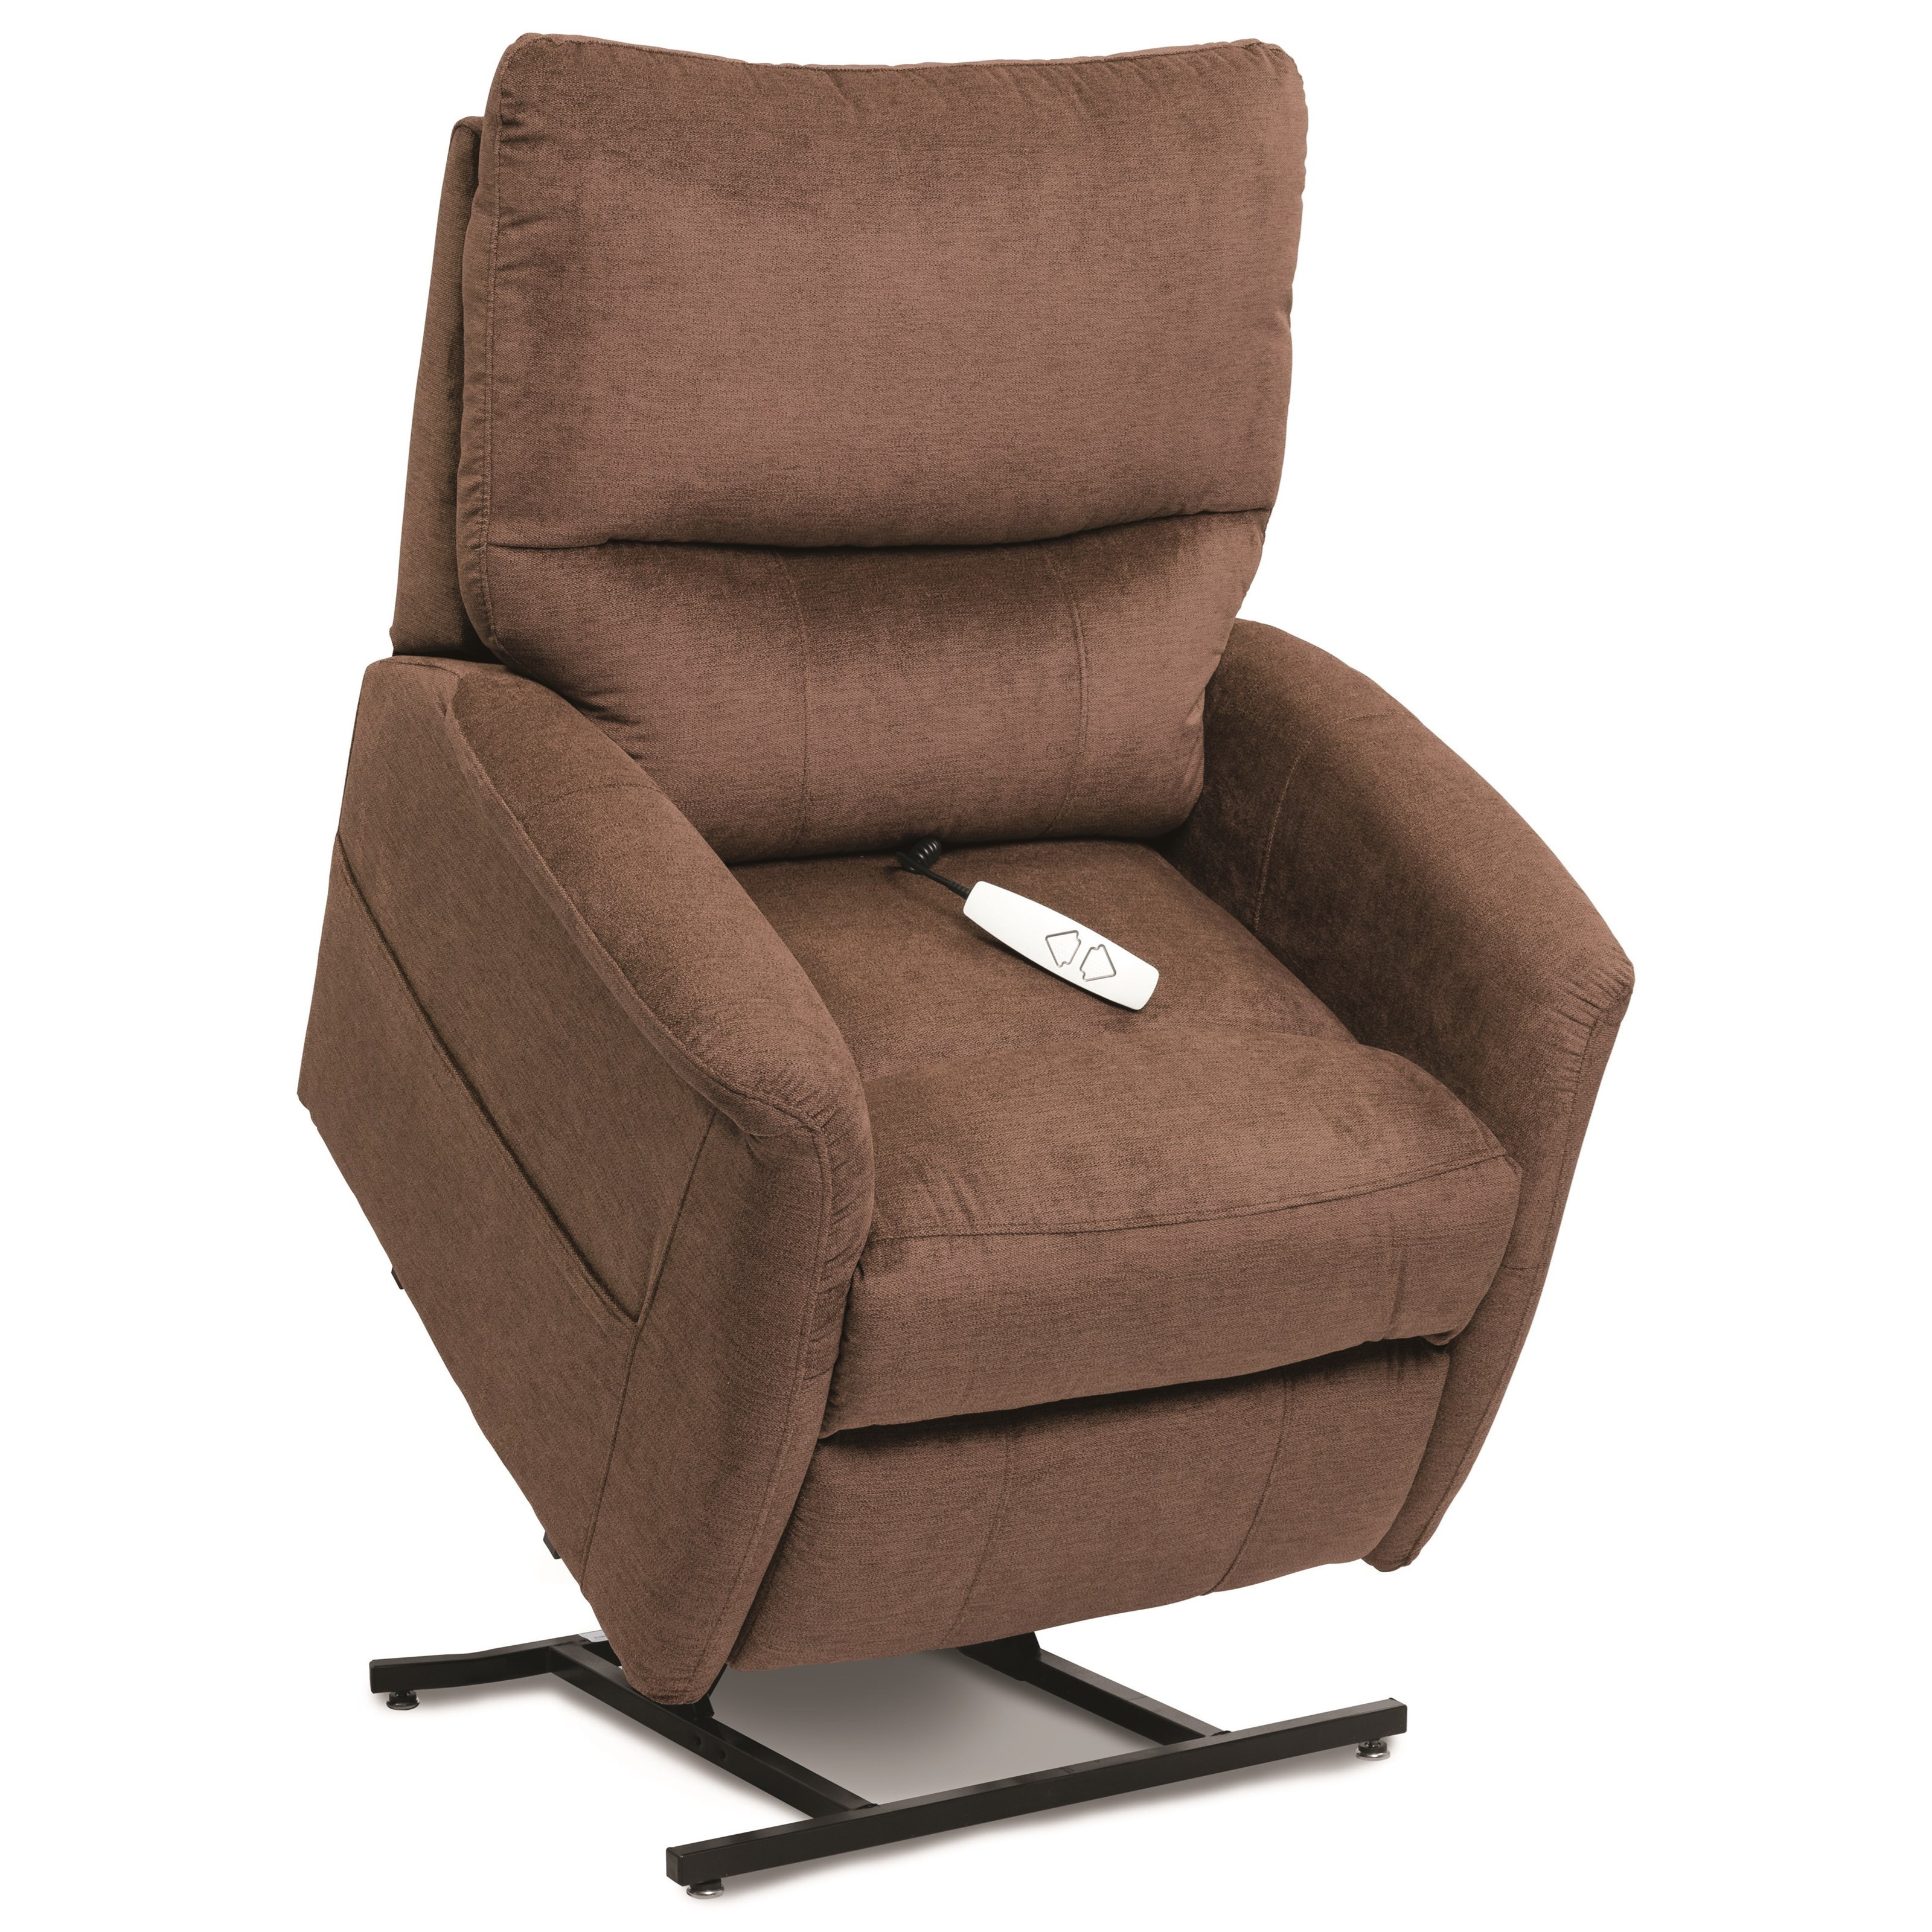 Lift Chairs Lift Recliner by Windermere Motion at Steger's Furniture